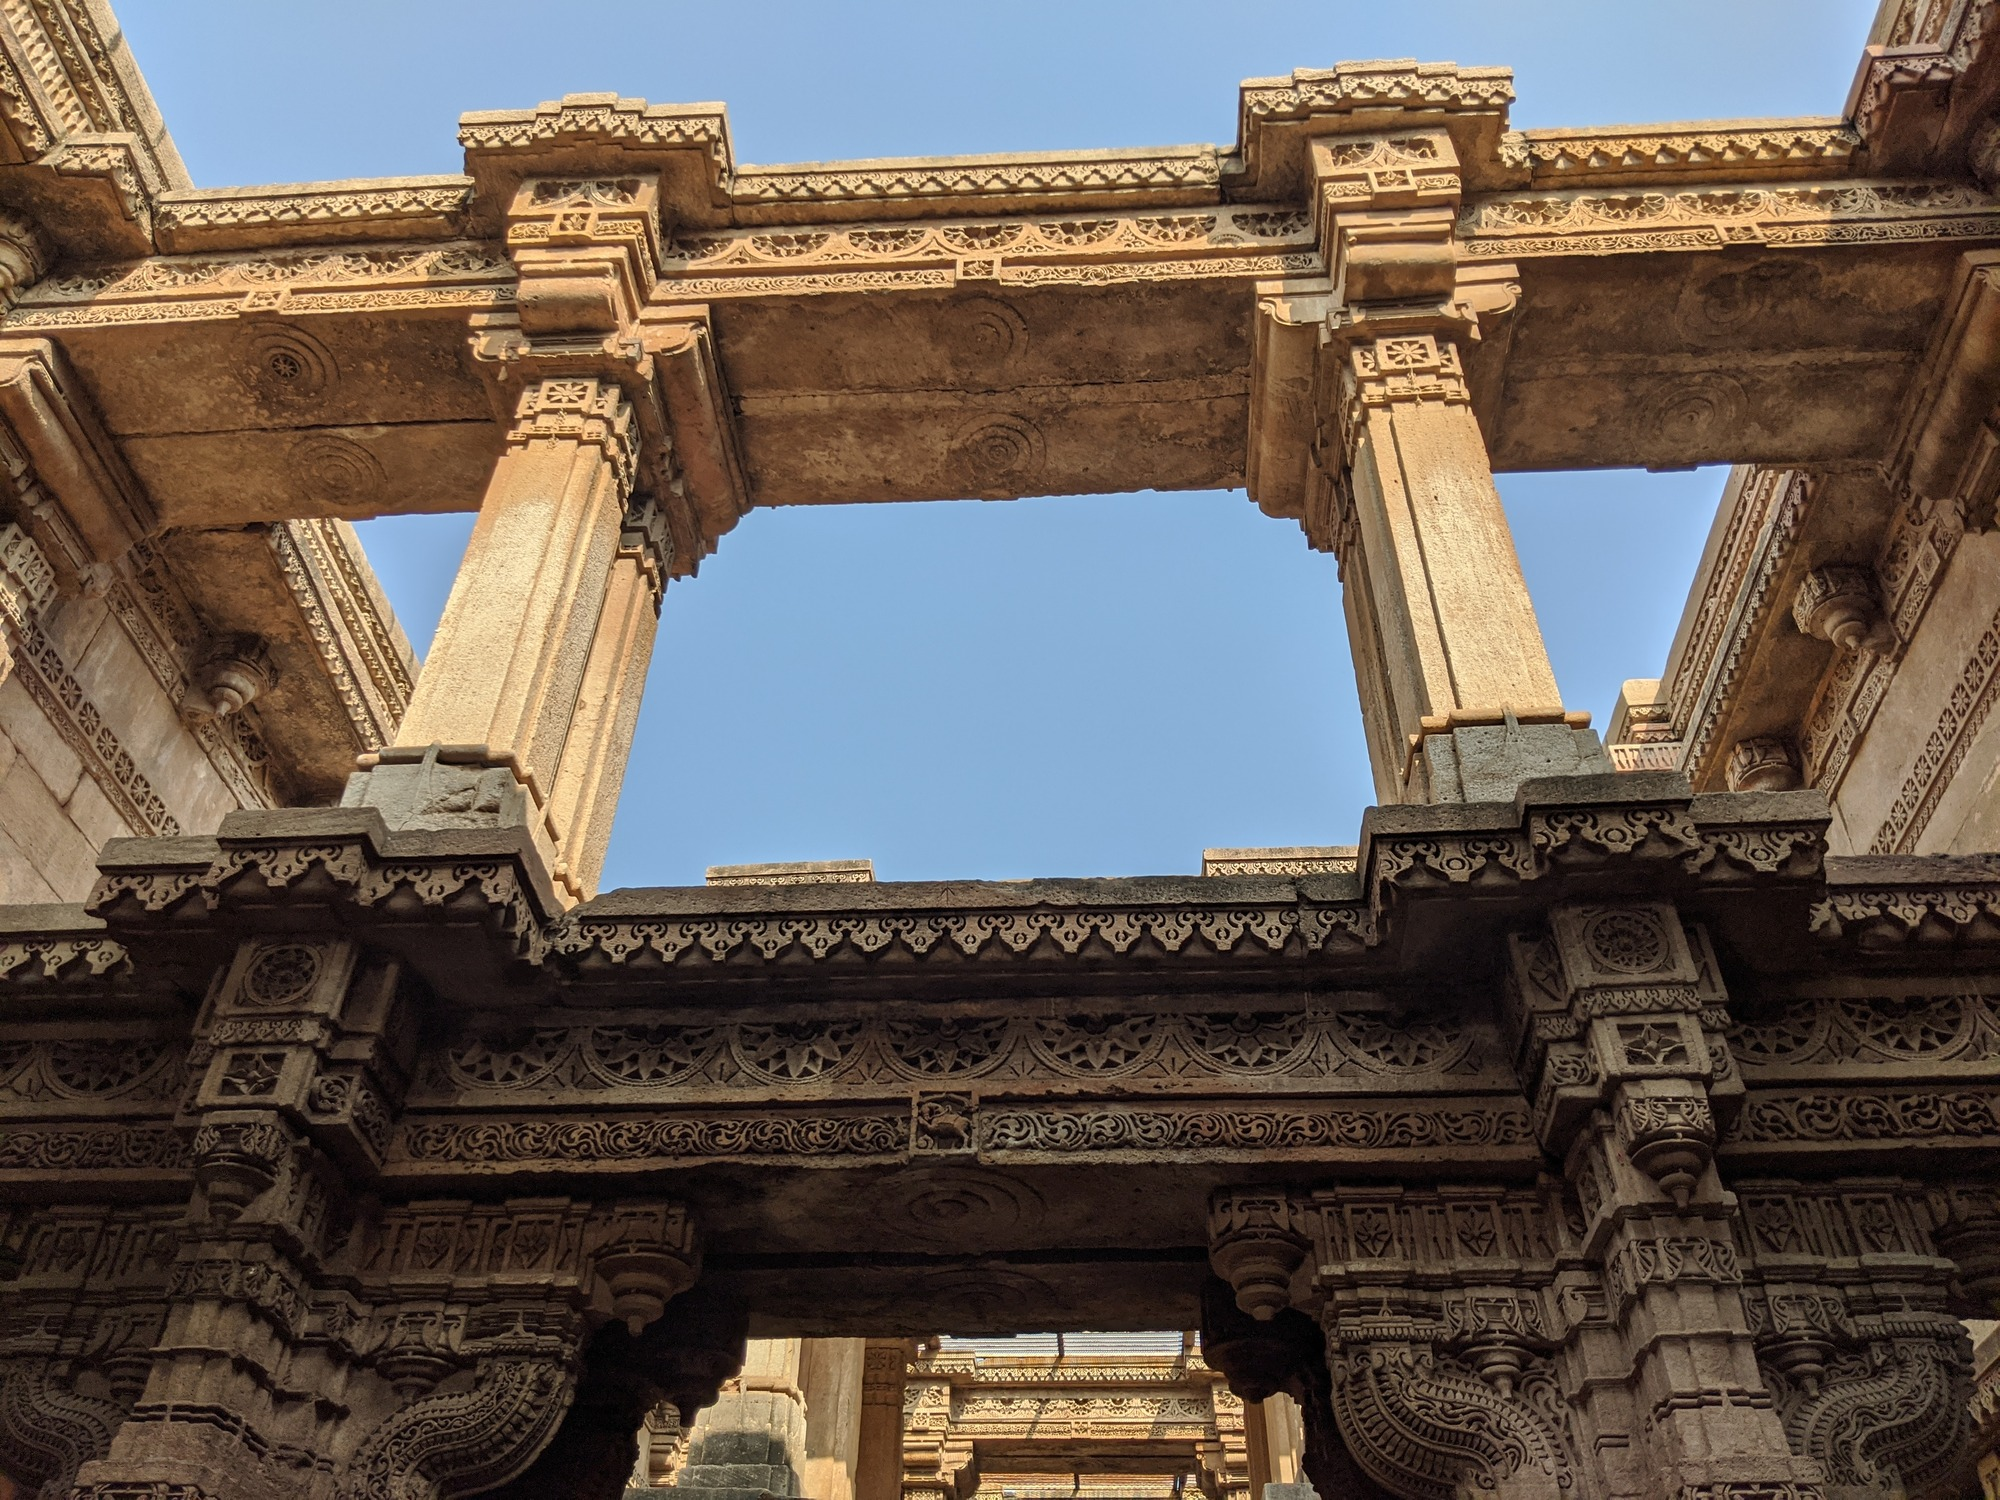 The Adalaj stepwell is five stories deep